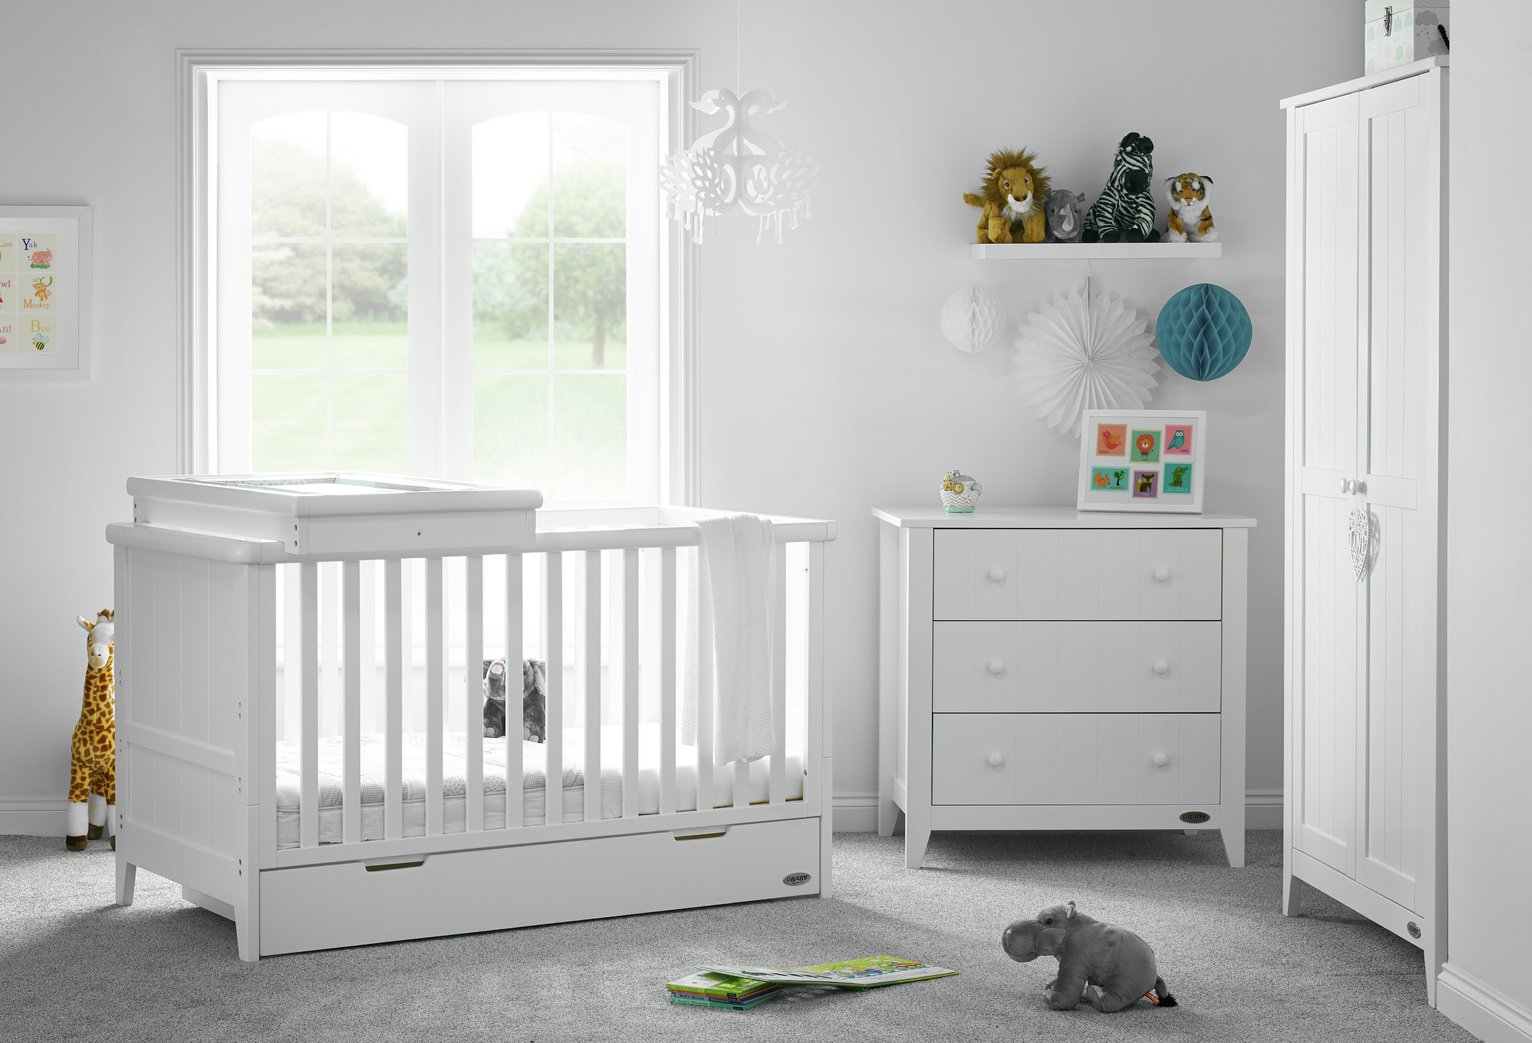 Obaby Belton 3 Piece Room Set - White